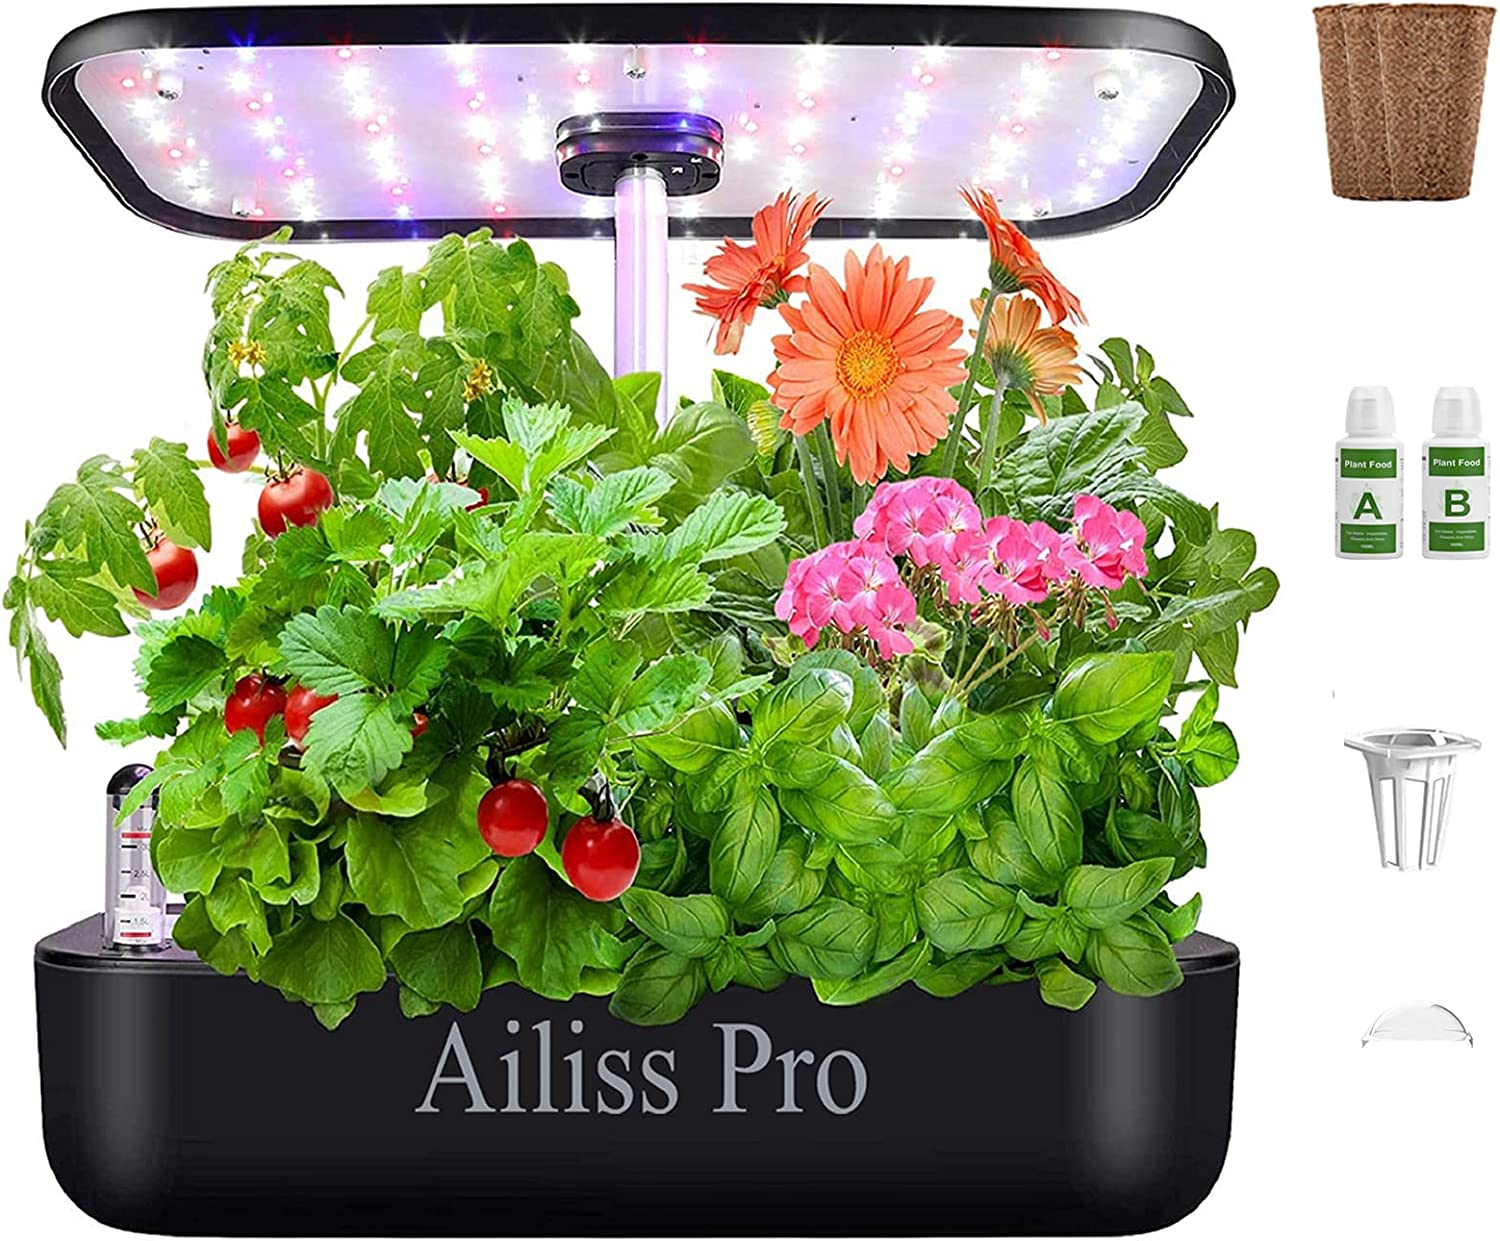 Discount mail order Hydroponics Growing System 12Pods Indoor Herb Garden Kit Clearance SALE Limited time